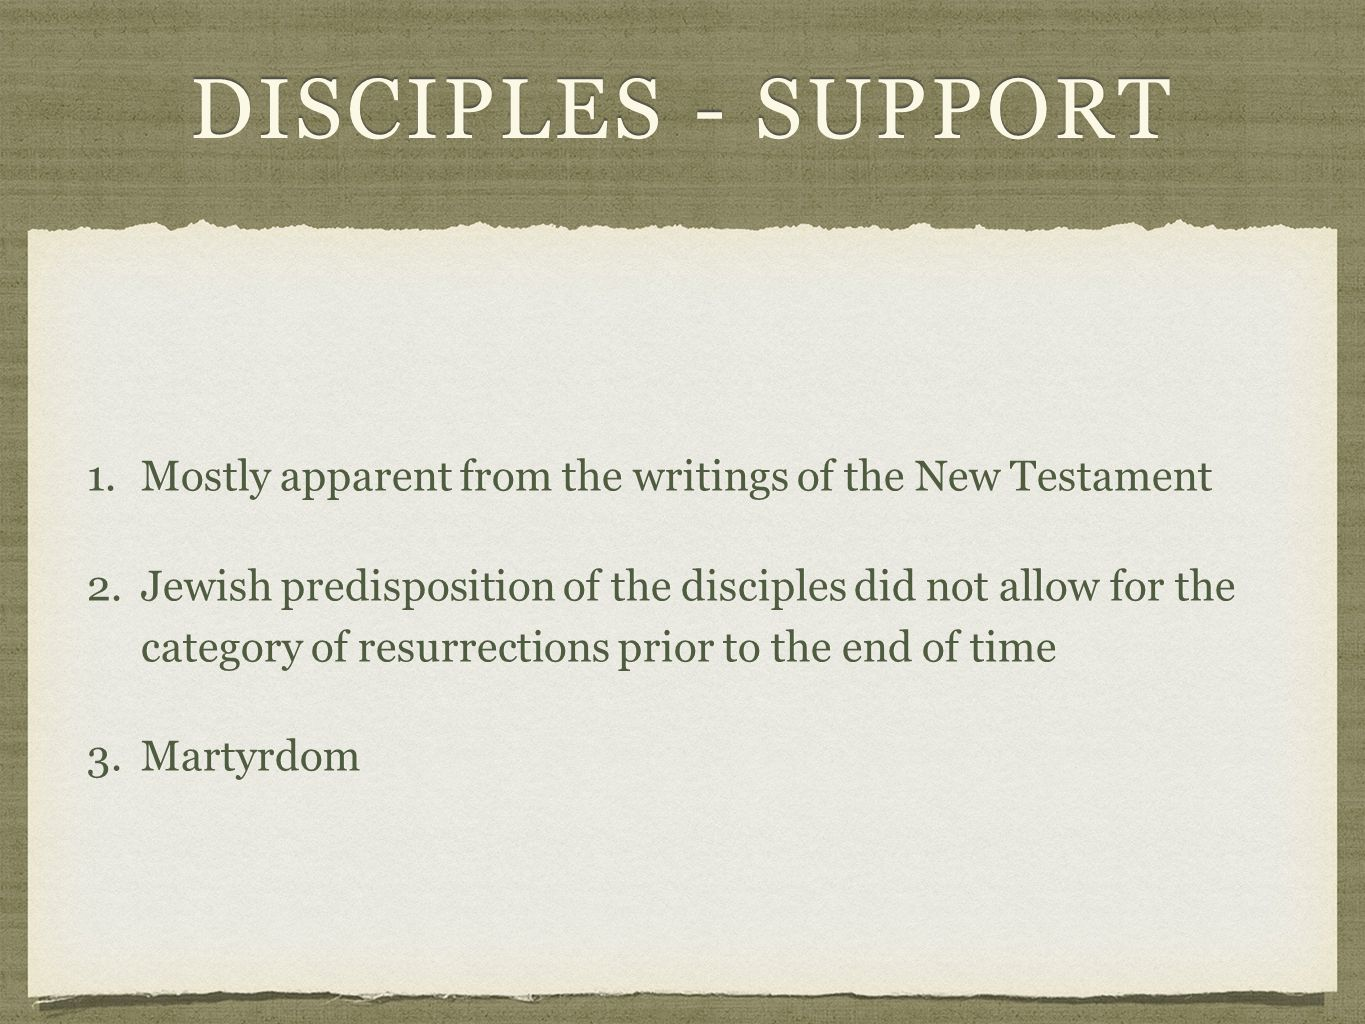 DISCIPLES - SUPPORT 1.Mostly apparent from the writings of the New Testament1.Mostly apparent from the writings of the New Testament 2.Jewish predisposition of the disciples did not allow for the category of resurrections prior to the end of time 3.Martyrdom3.Martyrdom